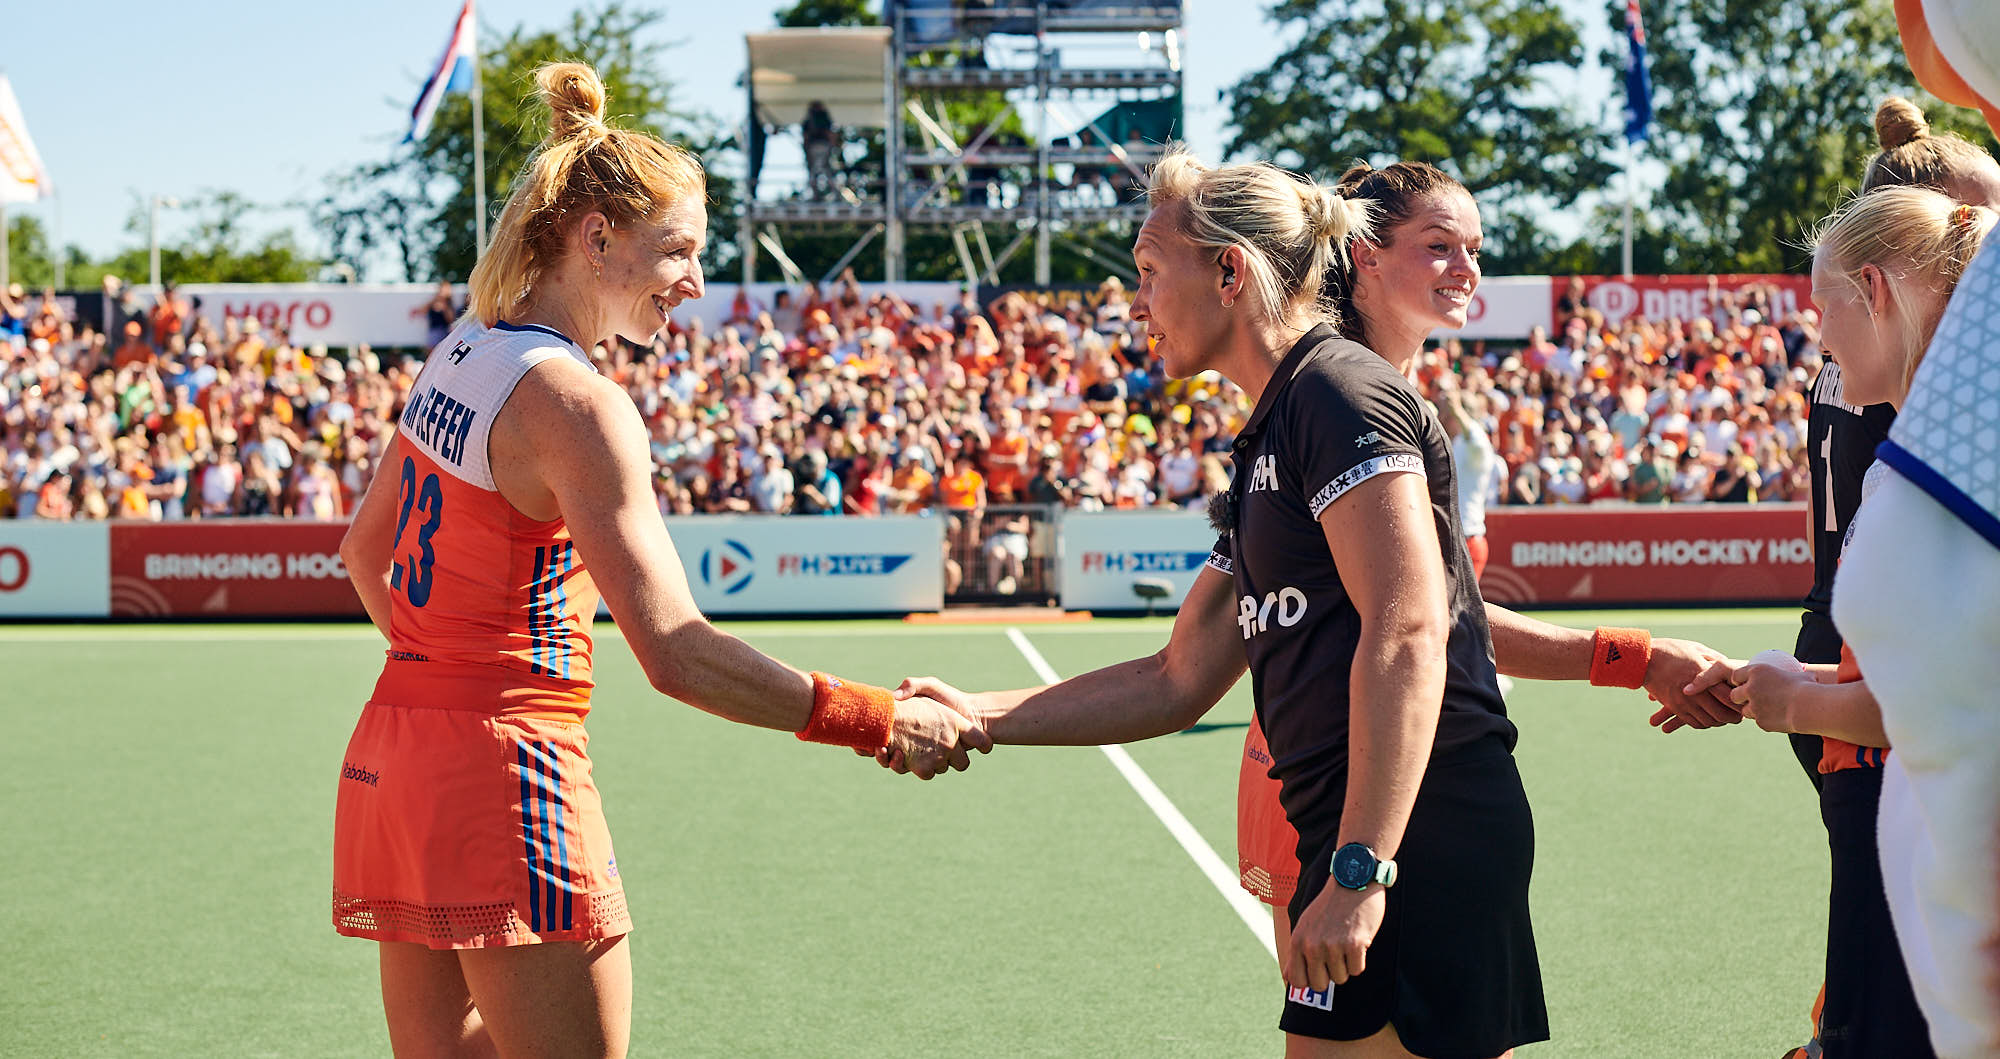 Margot van Geffen shaking a referee's hand during FIH Pro league finals in Amsterdam